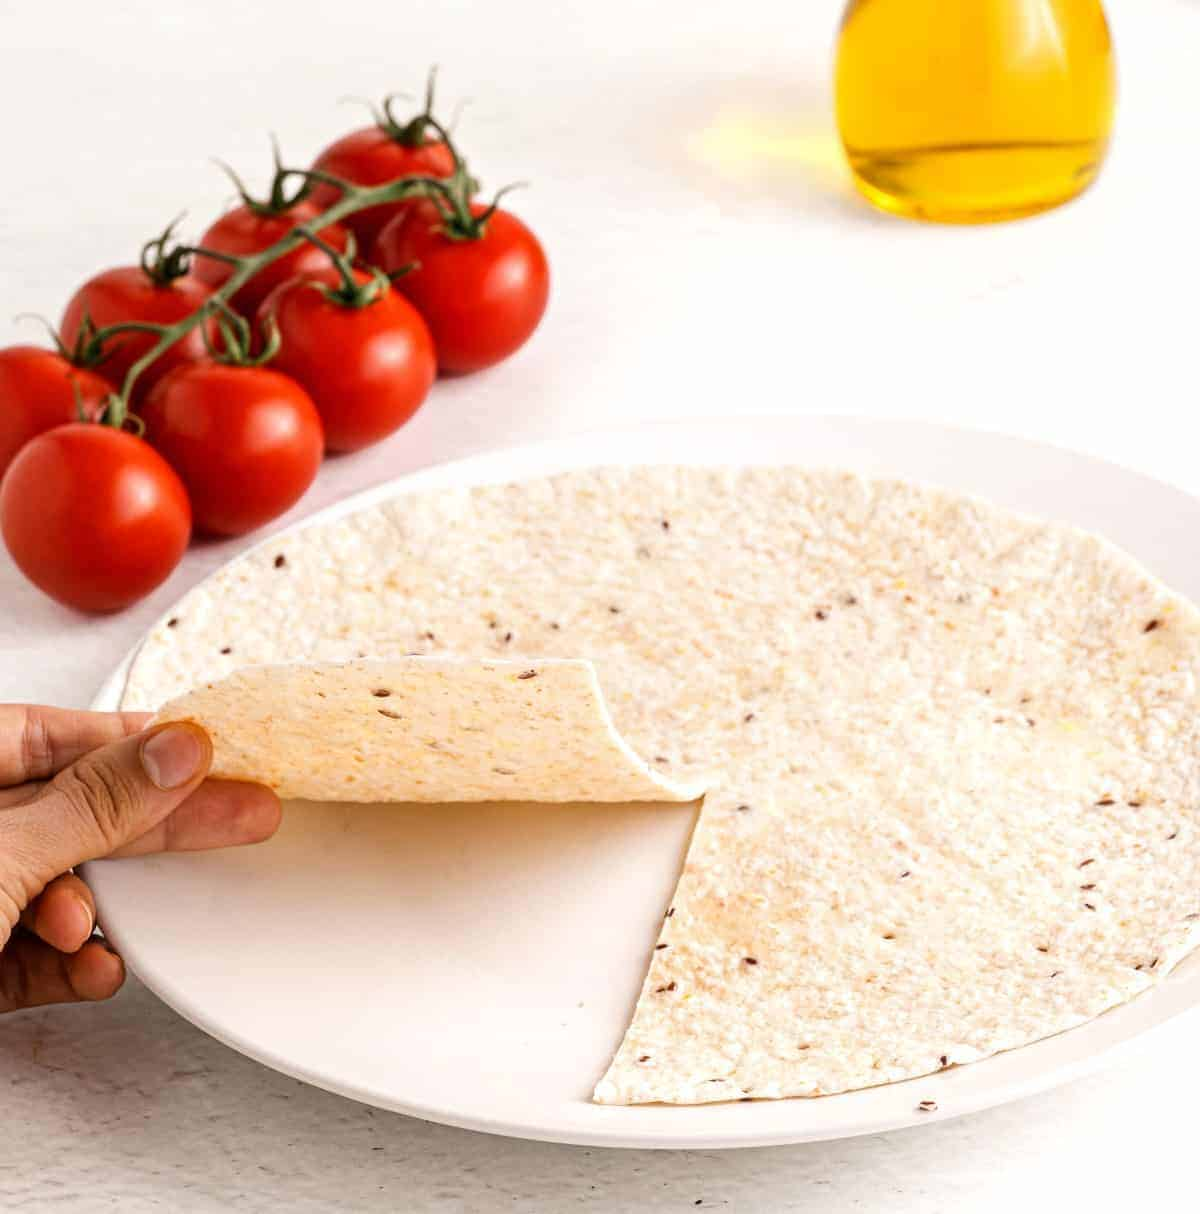 Showing the tortilla cut in preparation for folding your lunch.